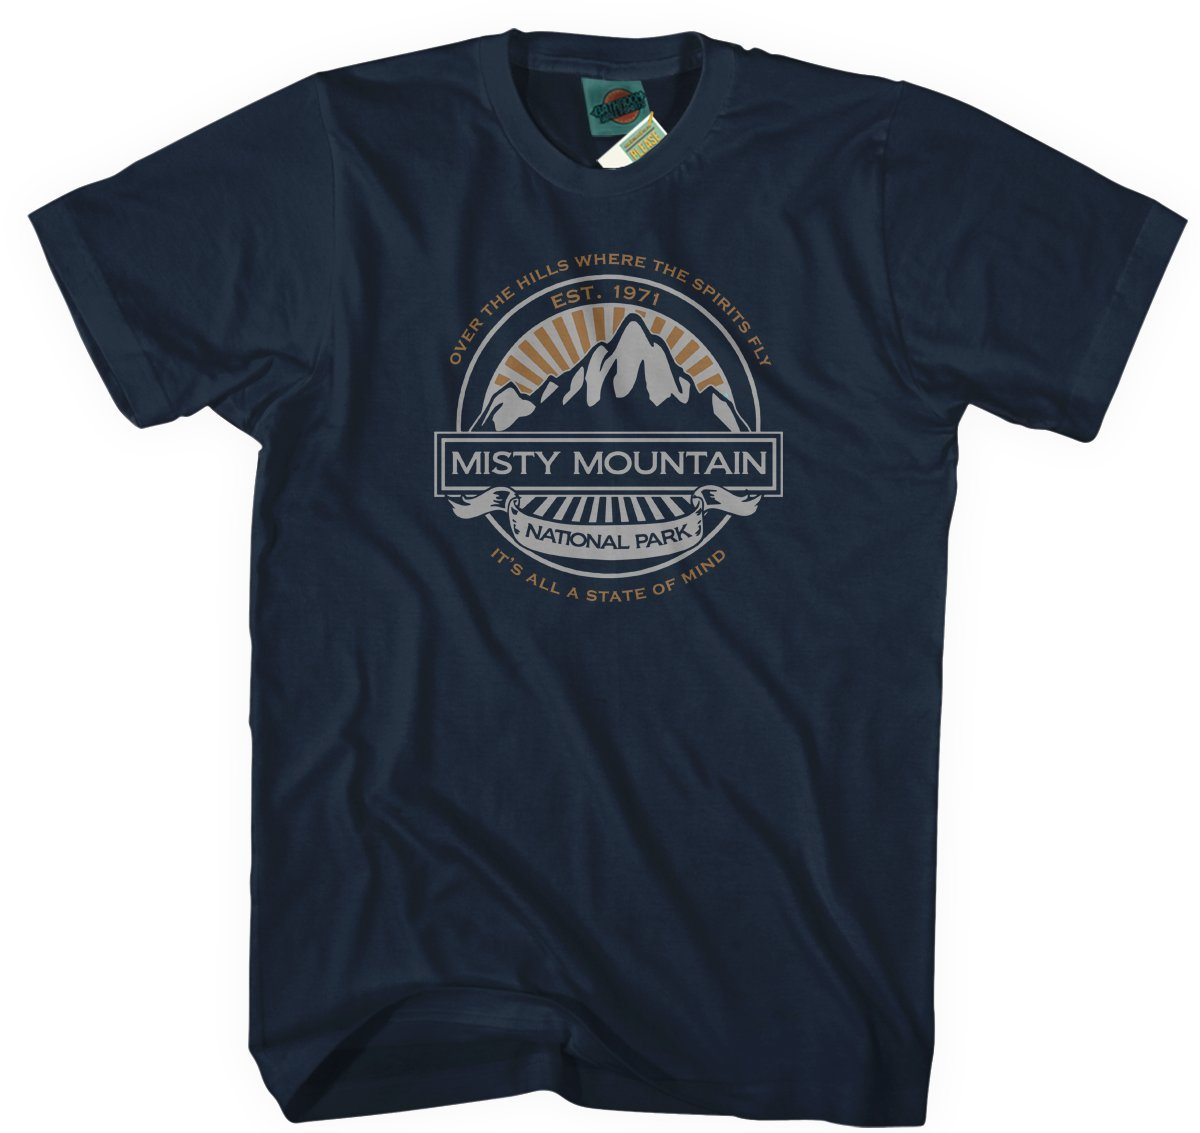 Tshirts Led Zeppelin Misty Mountain Hop Inspired S Tshirt X Navy Blue